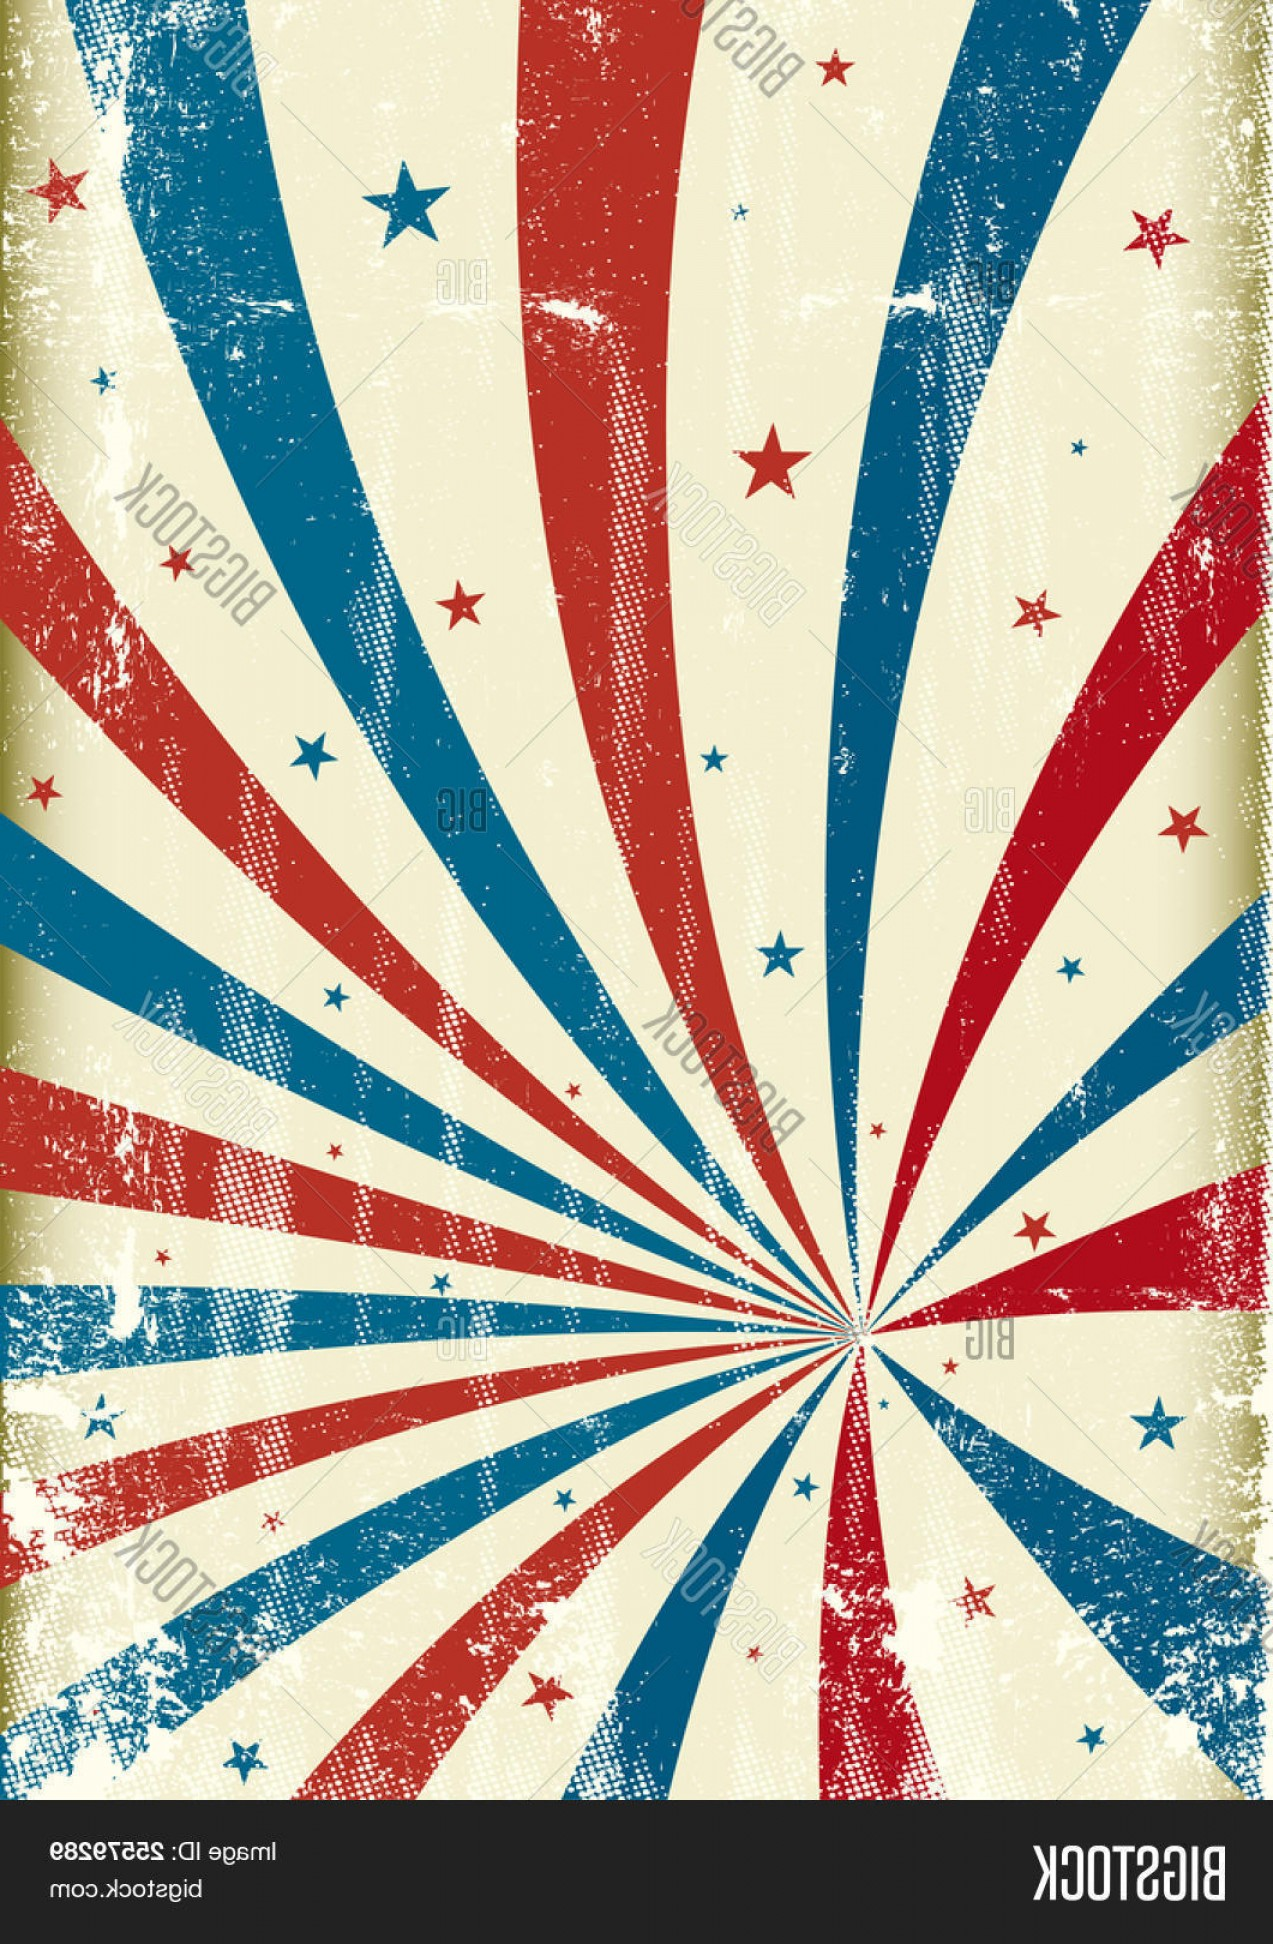 Circus Background Vector: Stock Vector Tricolor Grunge Circus Background A Patriotic Circus Background For A Poster